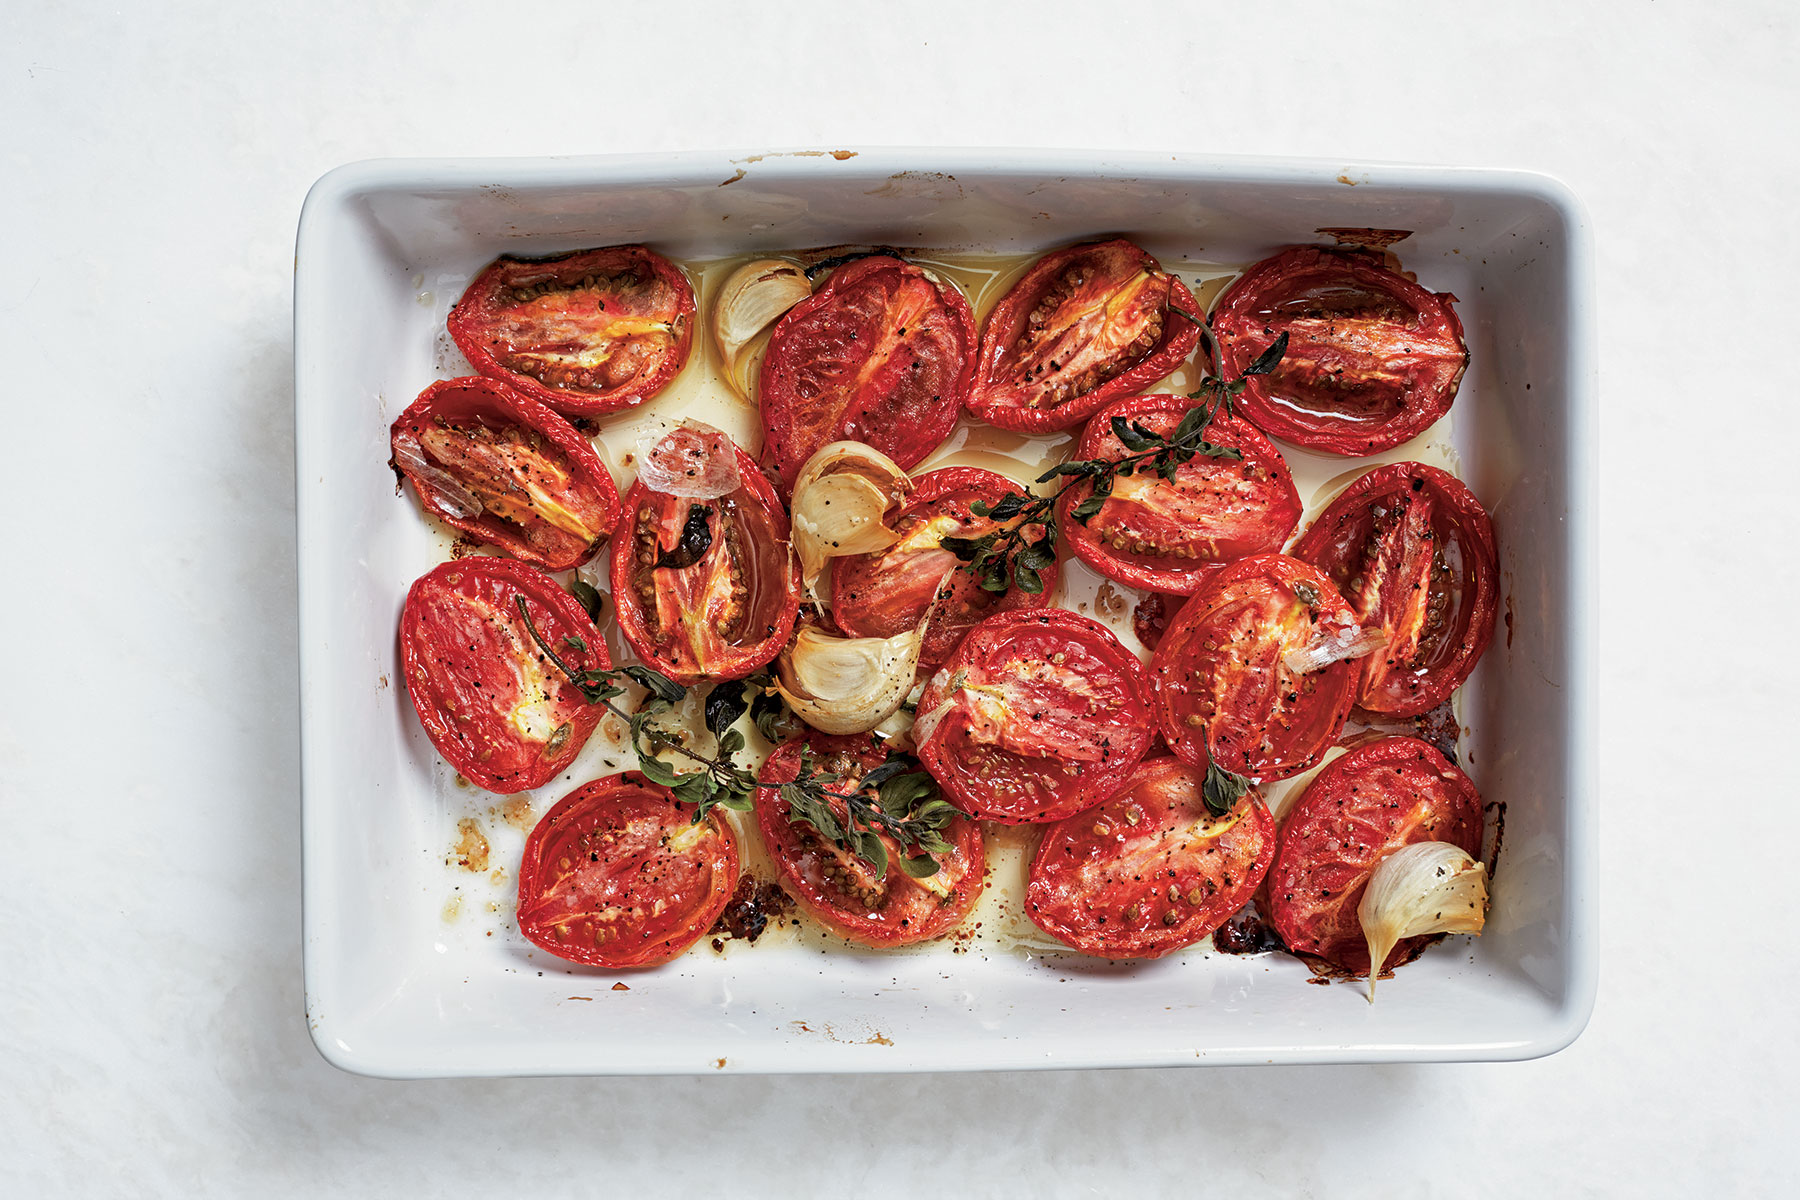 Slow-Roasted Plum Tomatoes with Garlic and Oregano